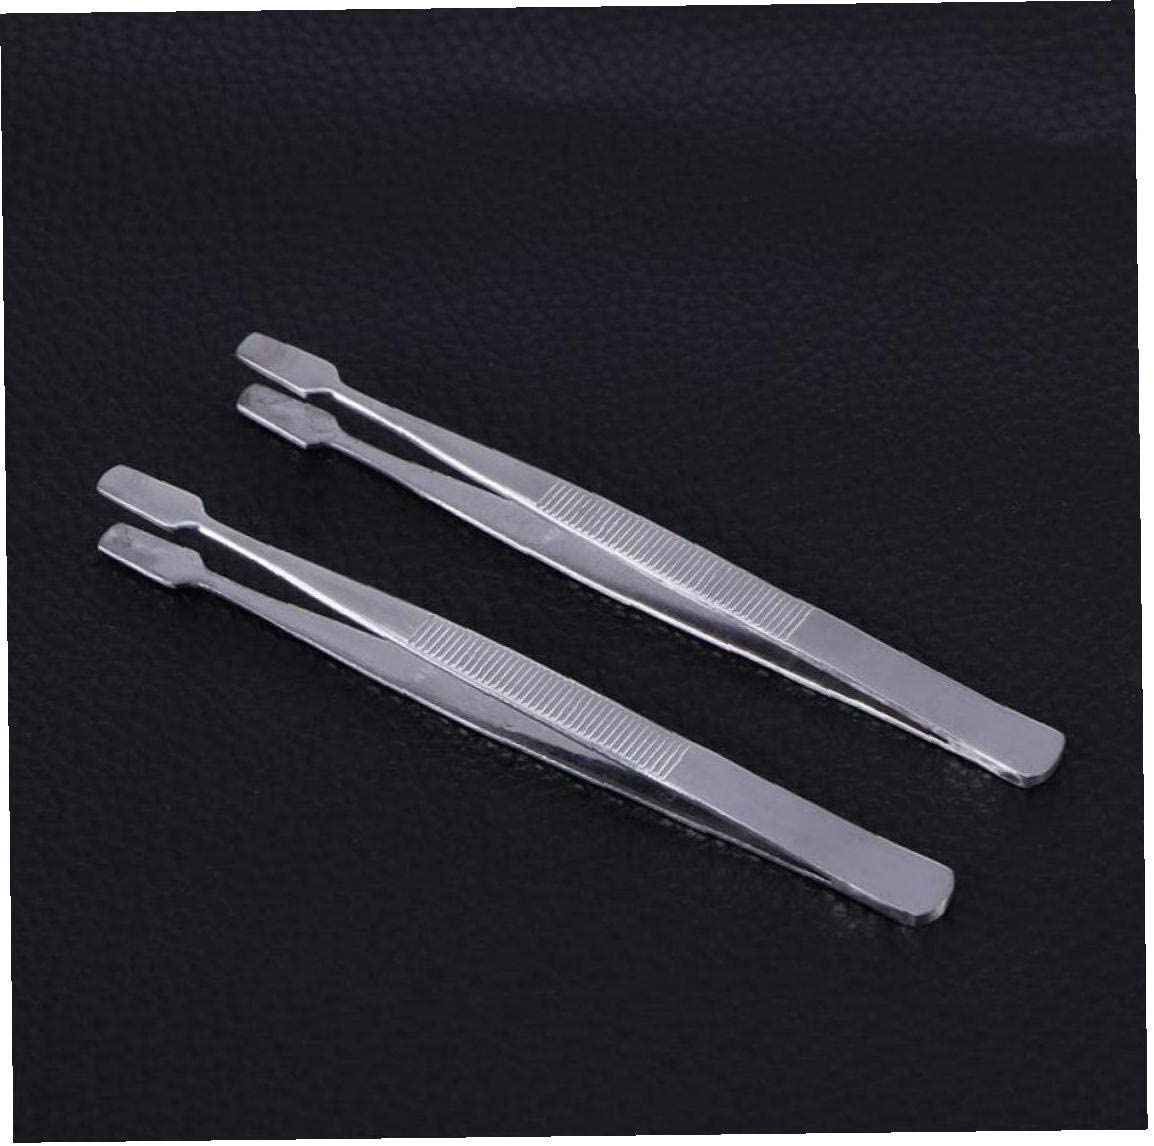 CULER 2Pcs Stamp Tweezers Flat Paddle End Style Anti-Slip Tweezers for Handling Stamps Stickers Stamps Collector Tools Silver